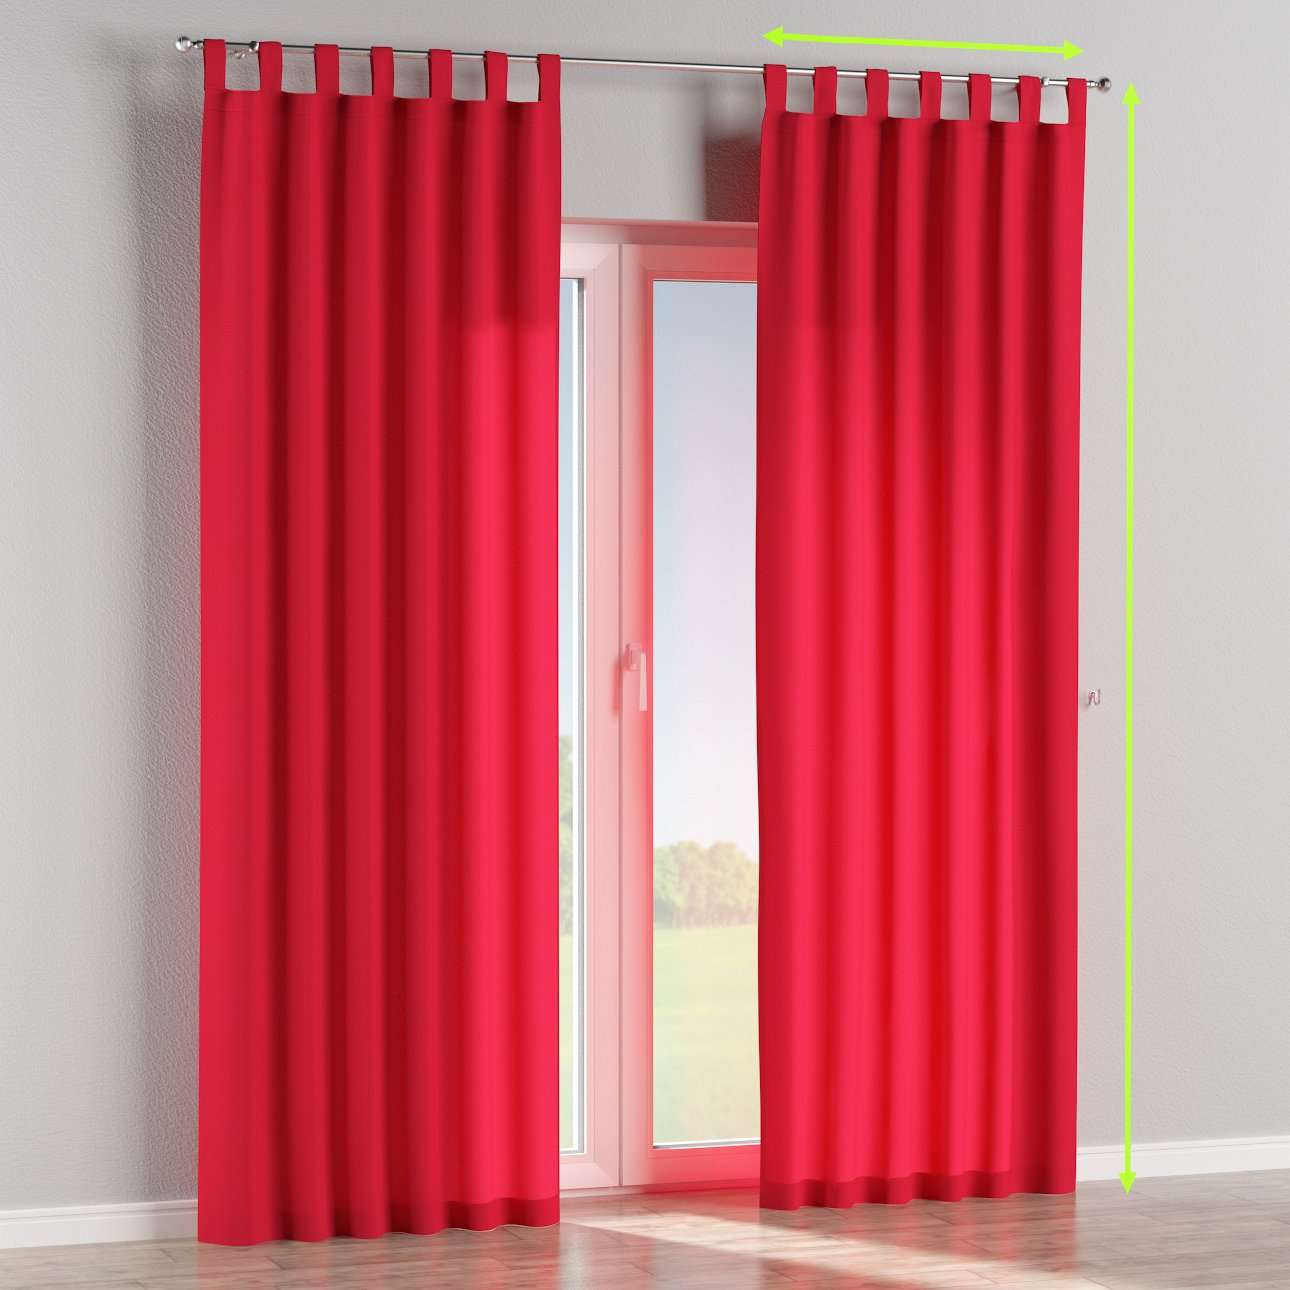 Tab top lined curtains in collection Quadro, fabric: 136-19